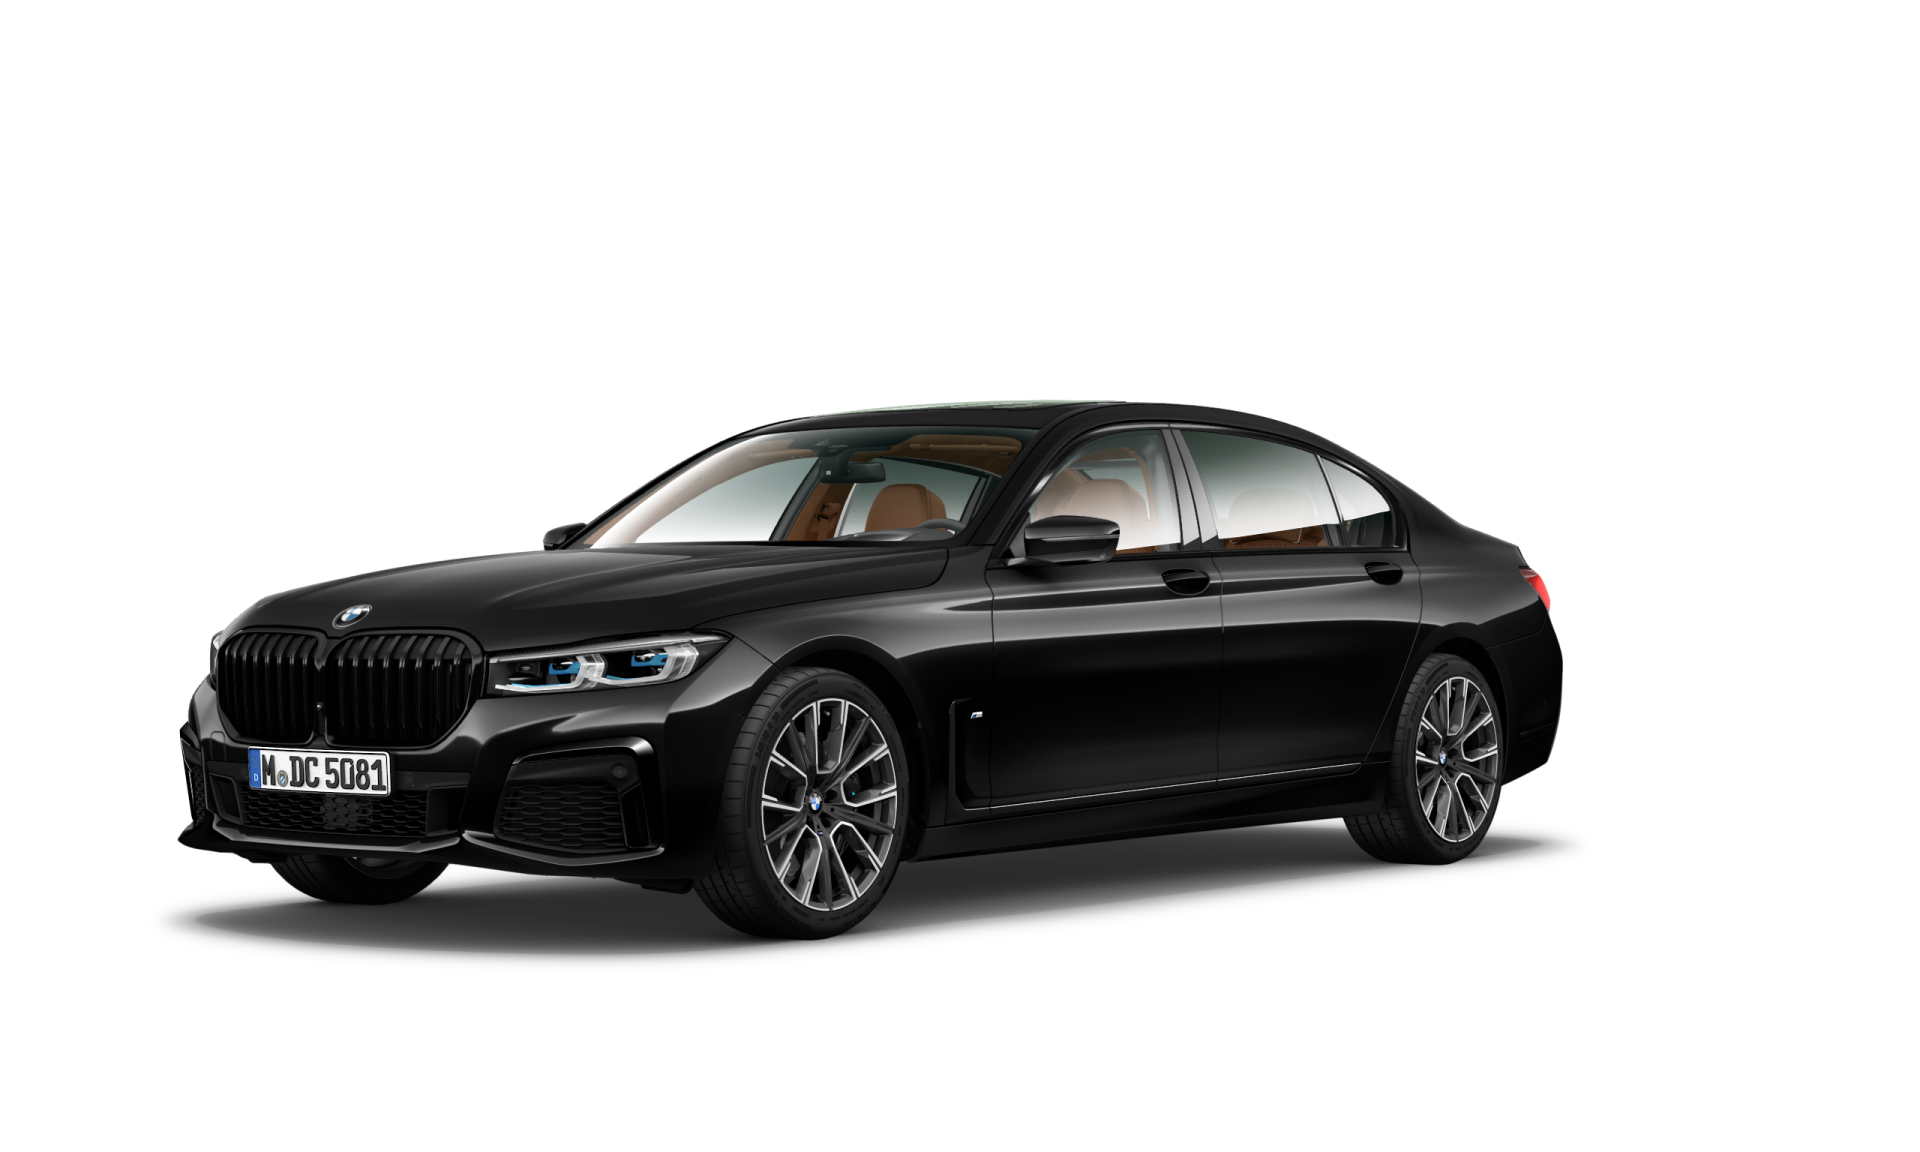 BMW 740Ld xDrive Sedan